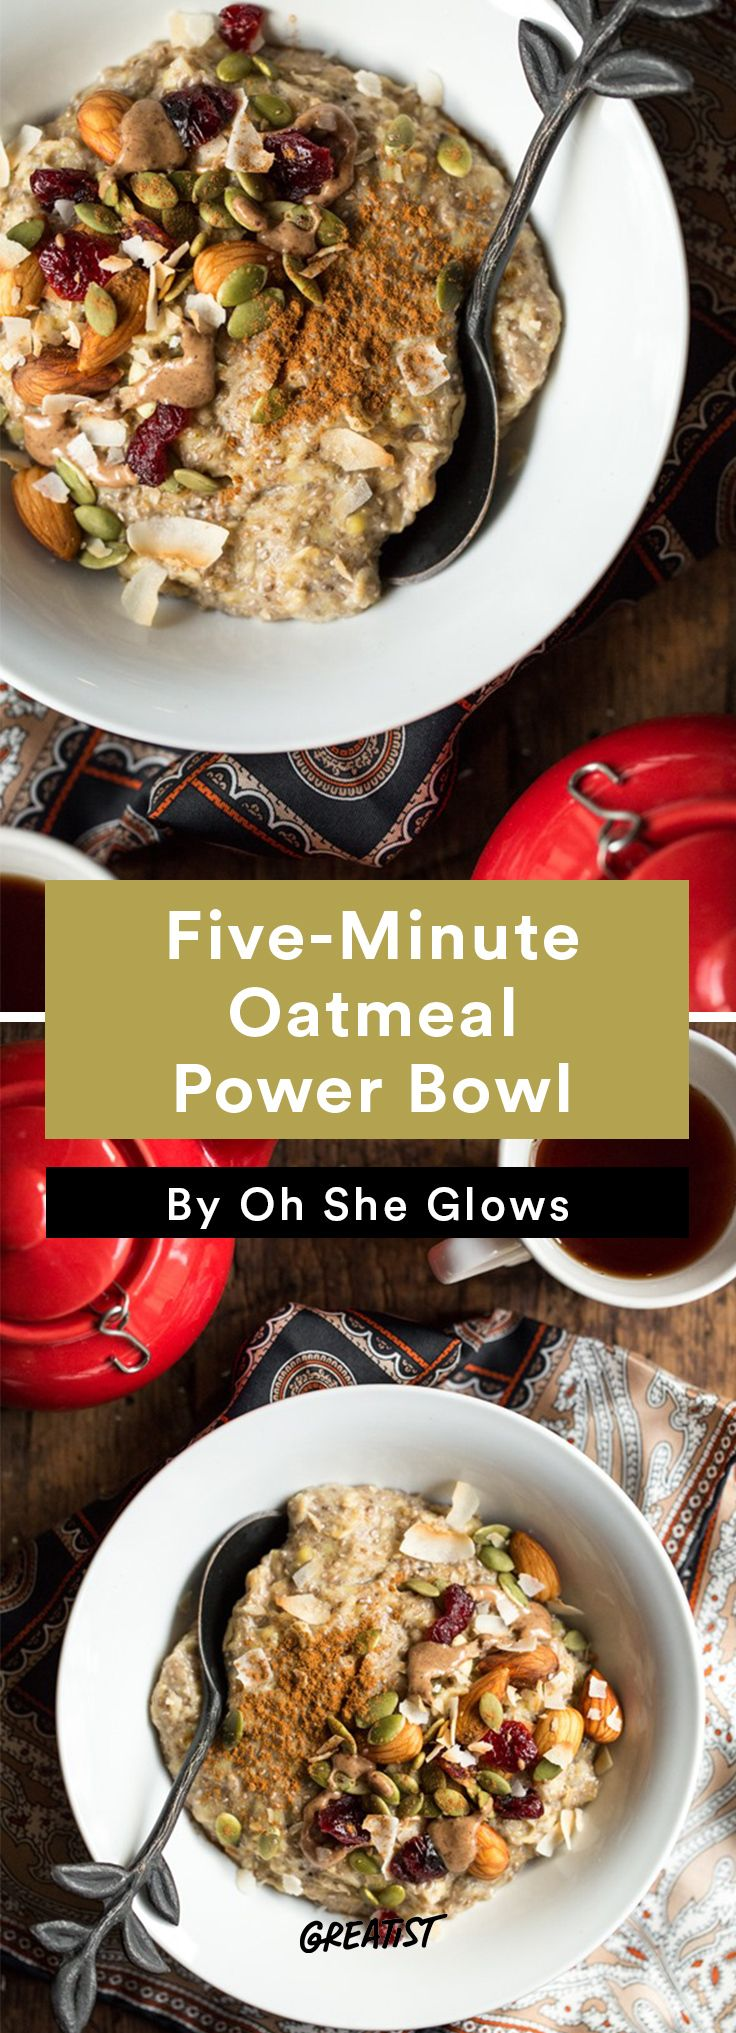 6. 5-Minute Oatmeal Power Bowl #vegan #bowl #recipes http://greatist.com/eat/vegan-bowl-recipes-we-cant-get-enough-of